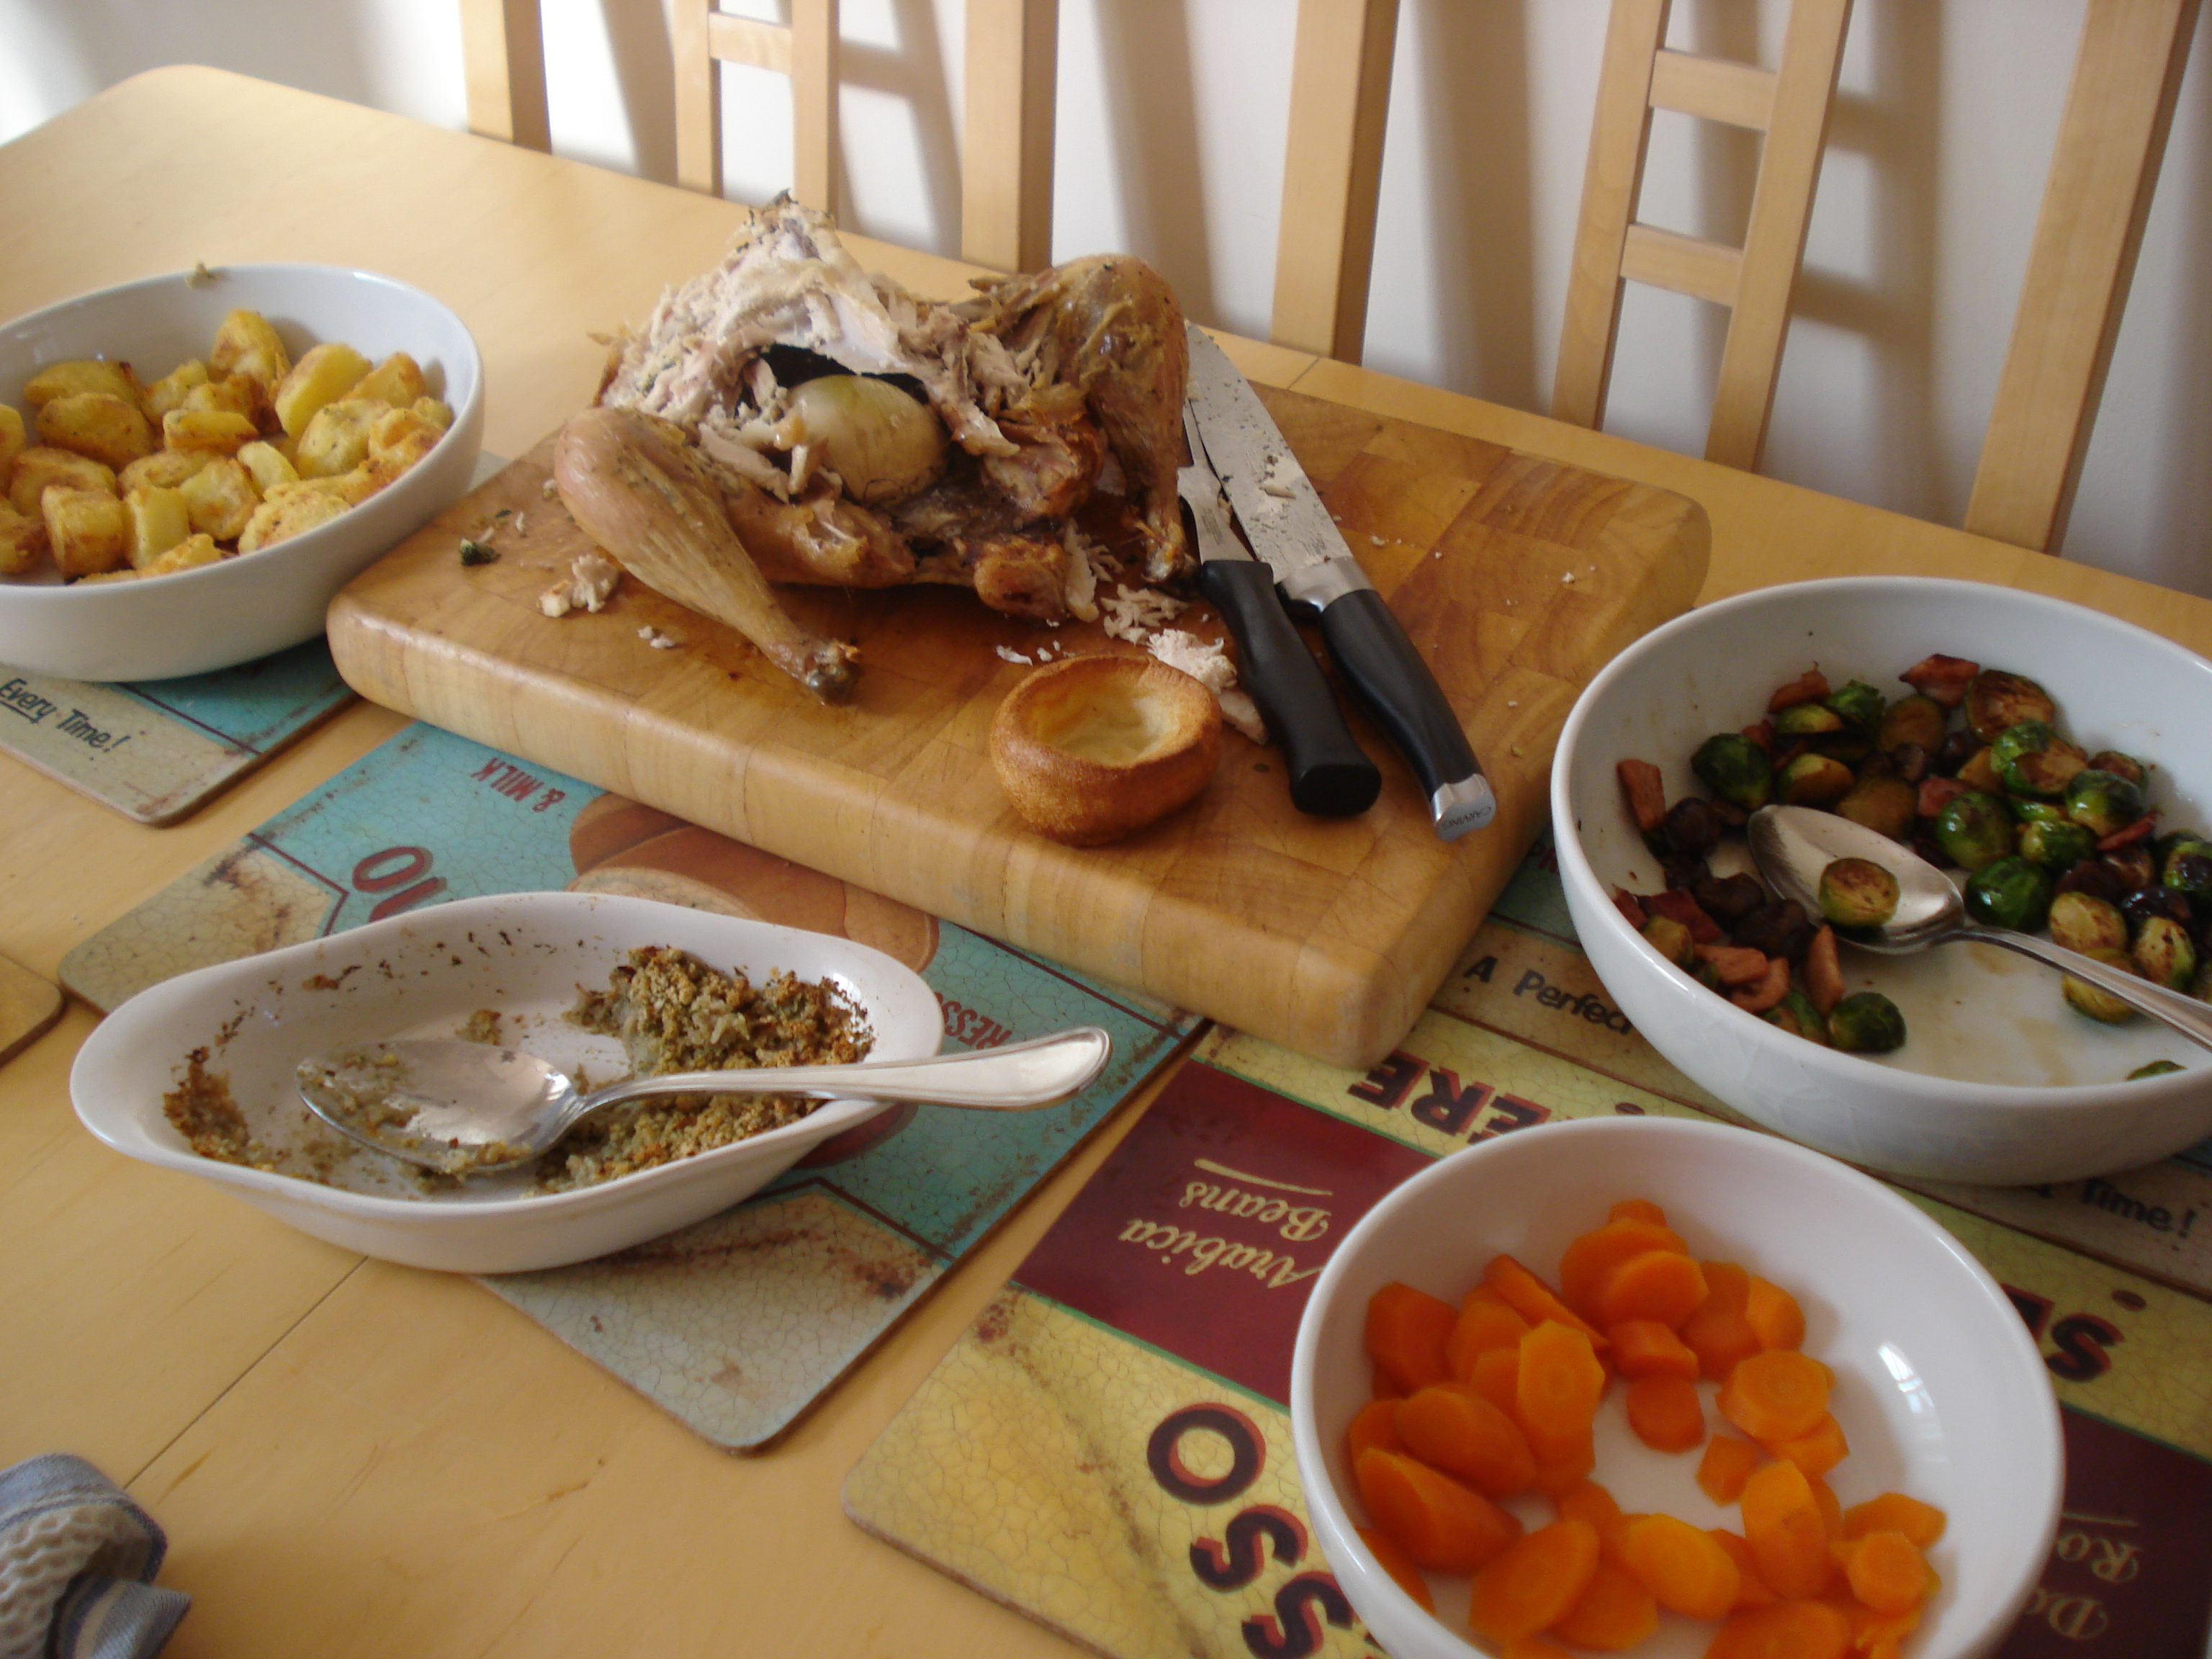 sunday roast chicken with roast potatoes, carrots and brussels sprouts